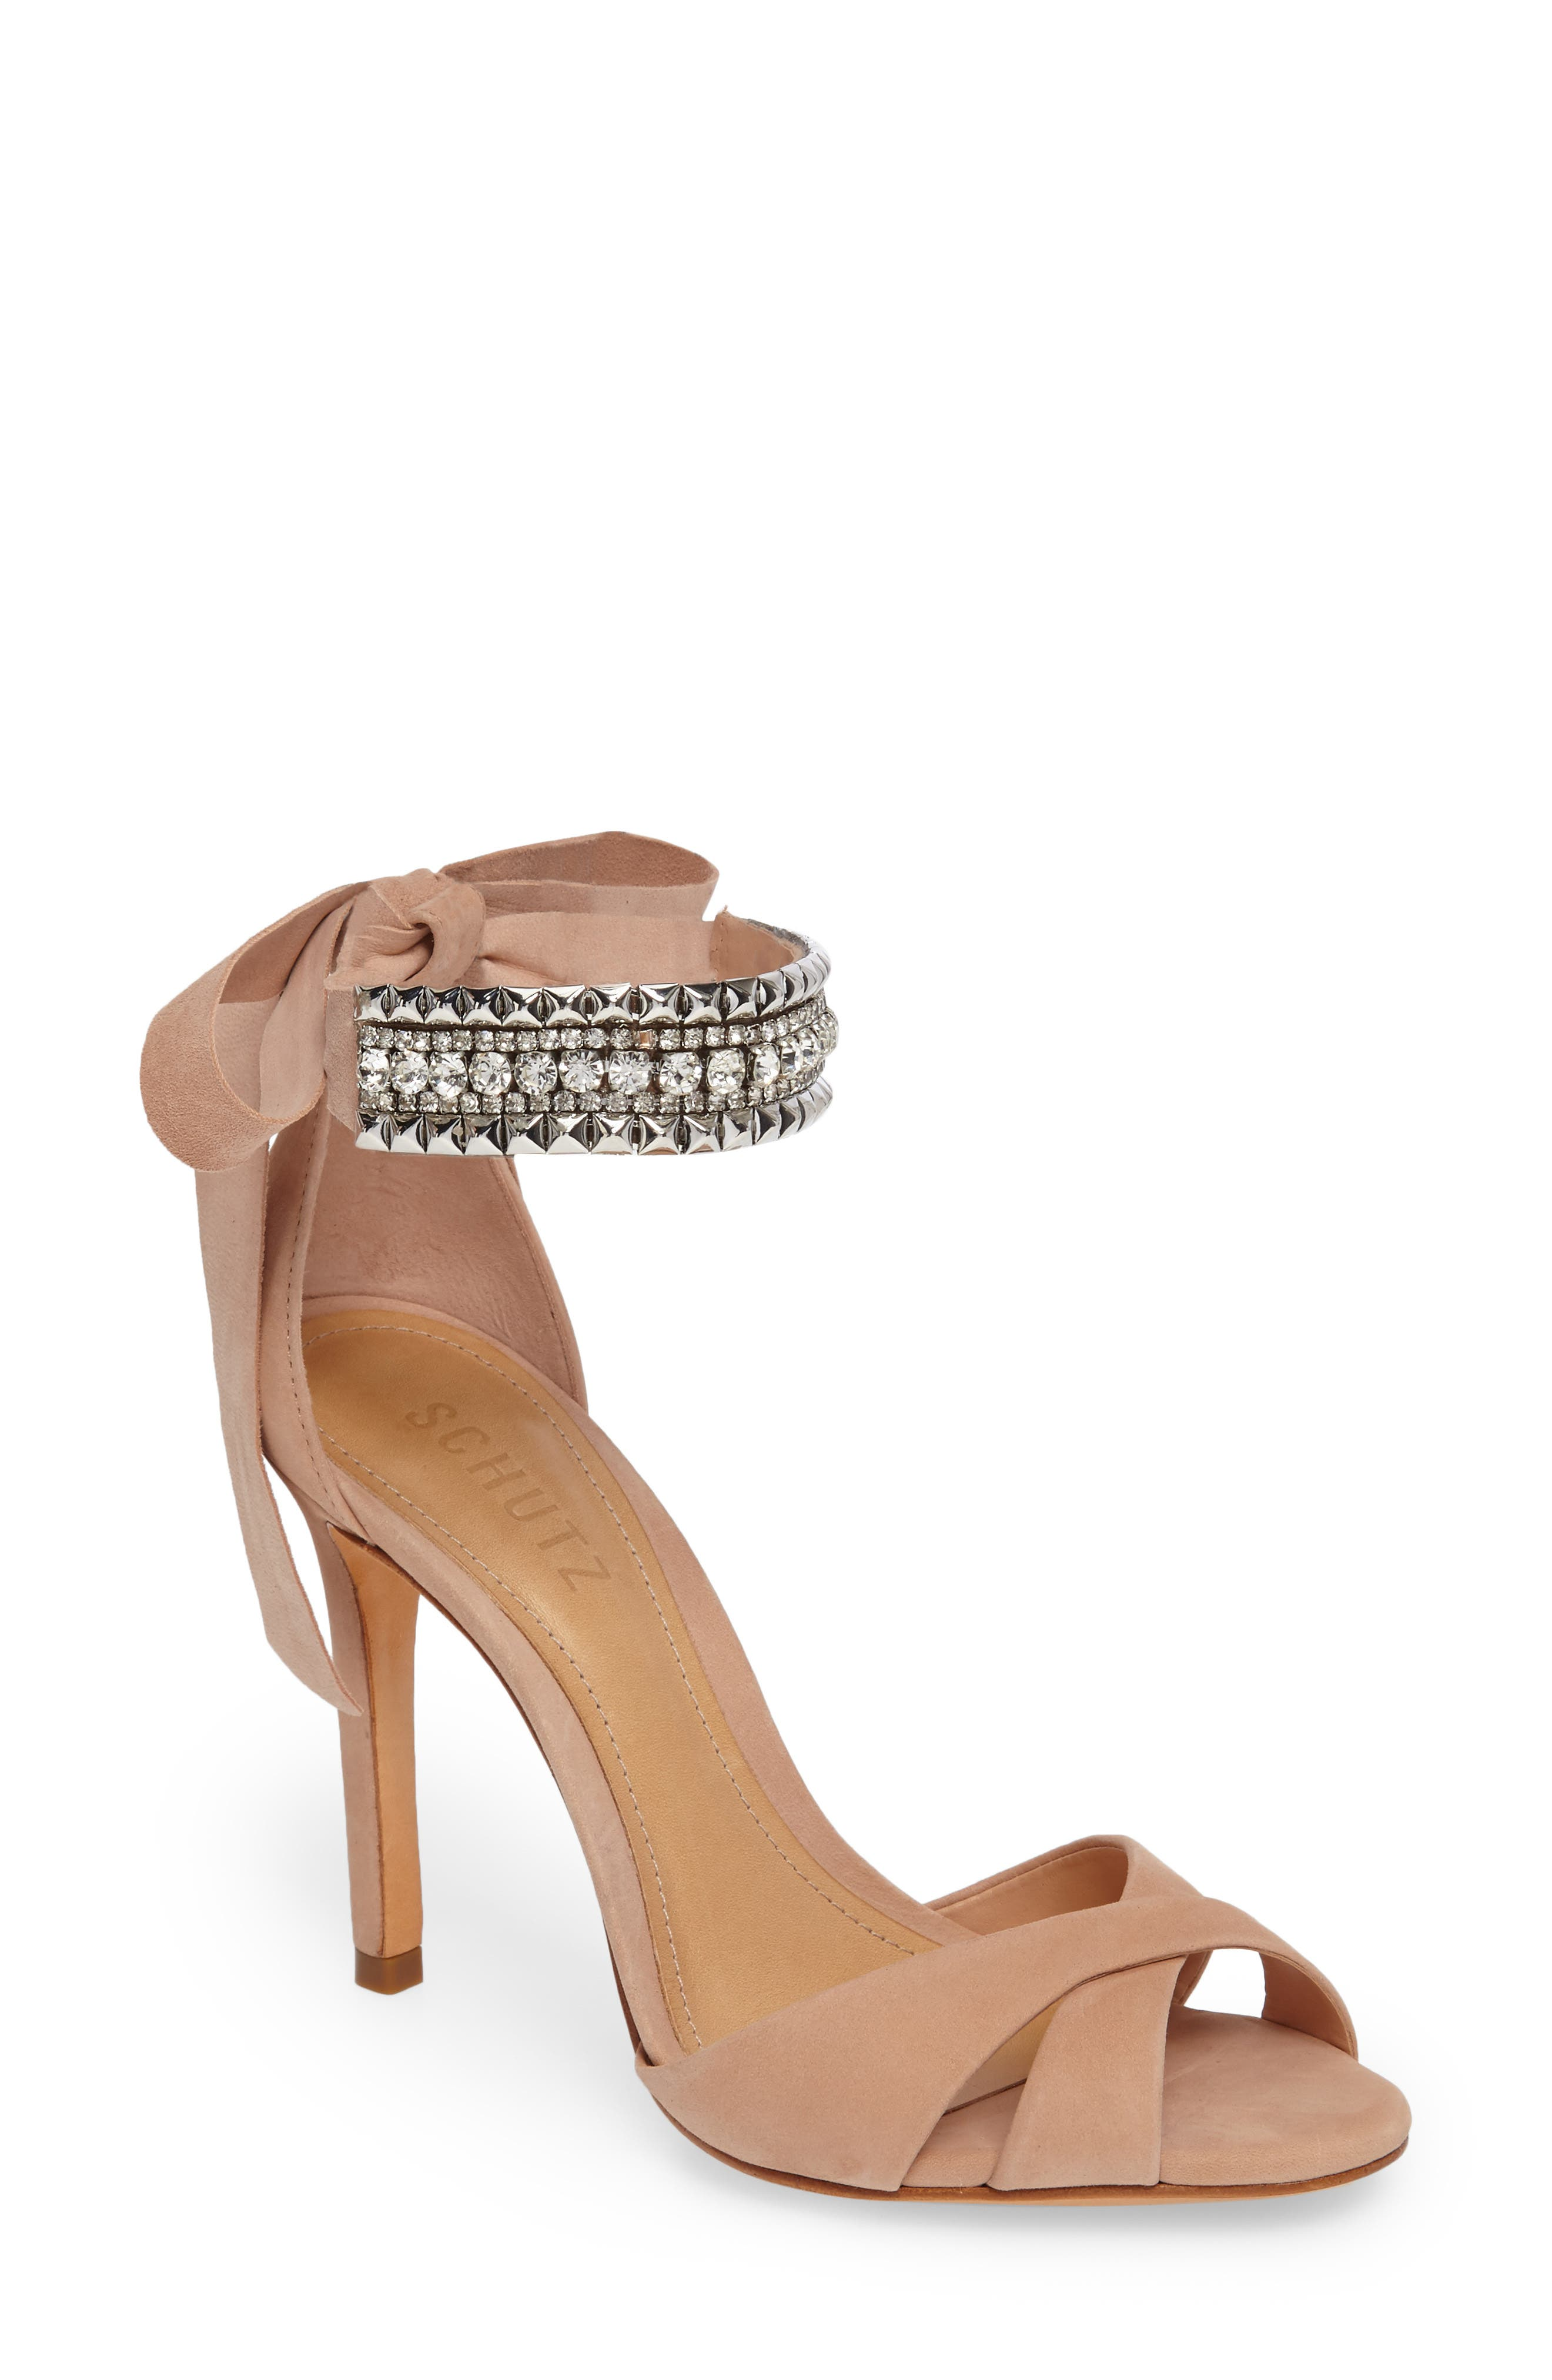 Larazee Embellished Sandal,                             Main thumbnail 2, color,